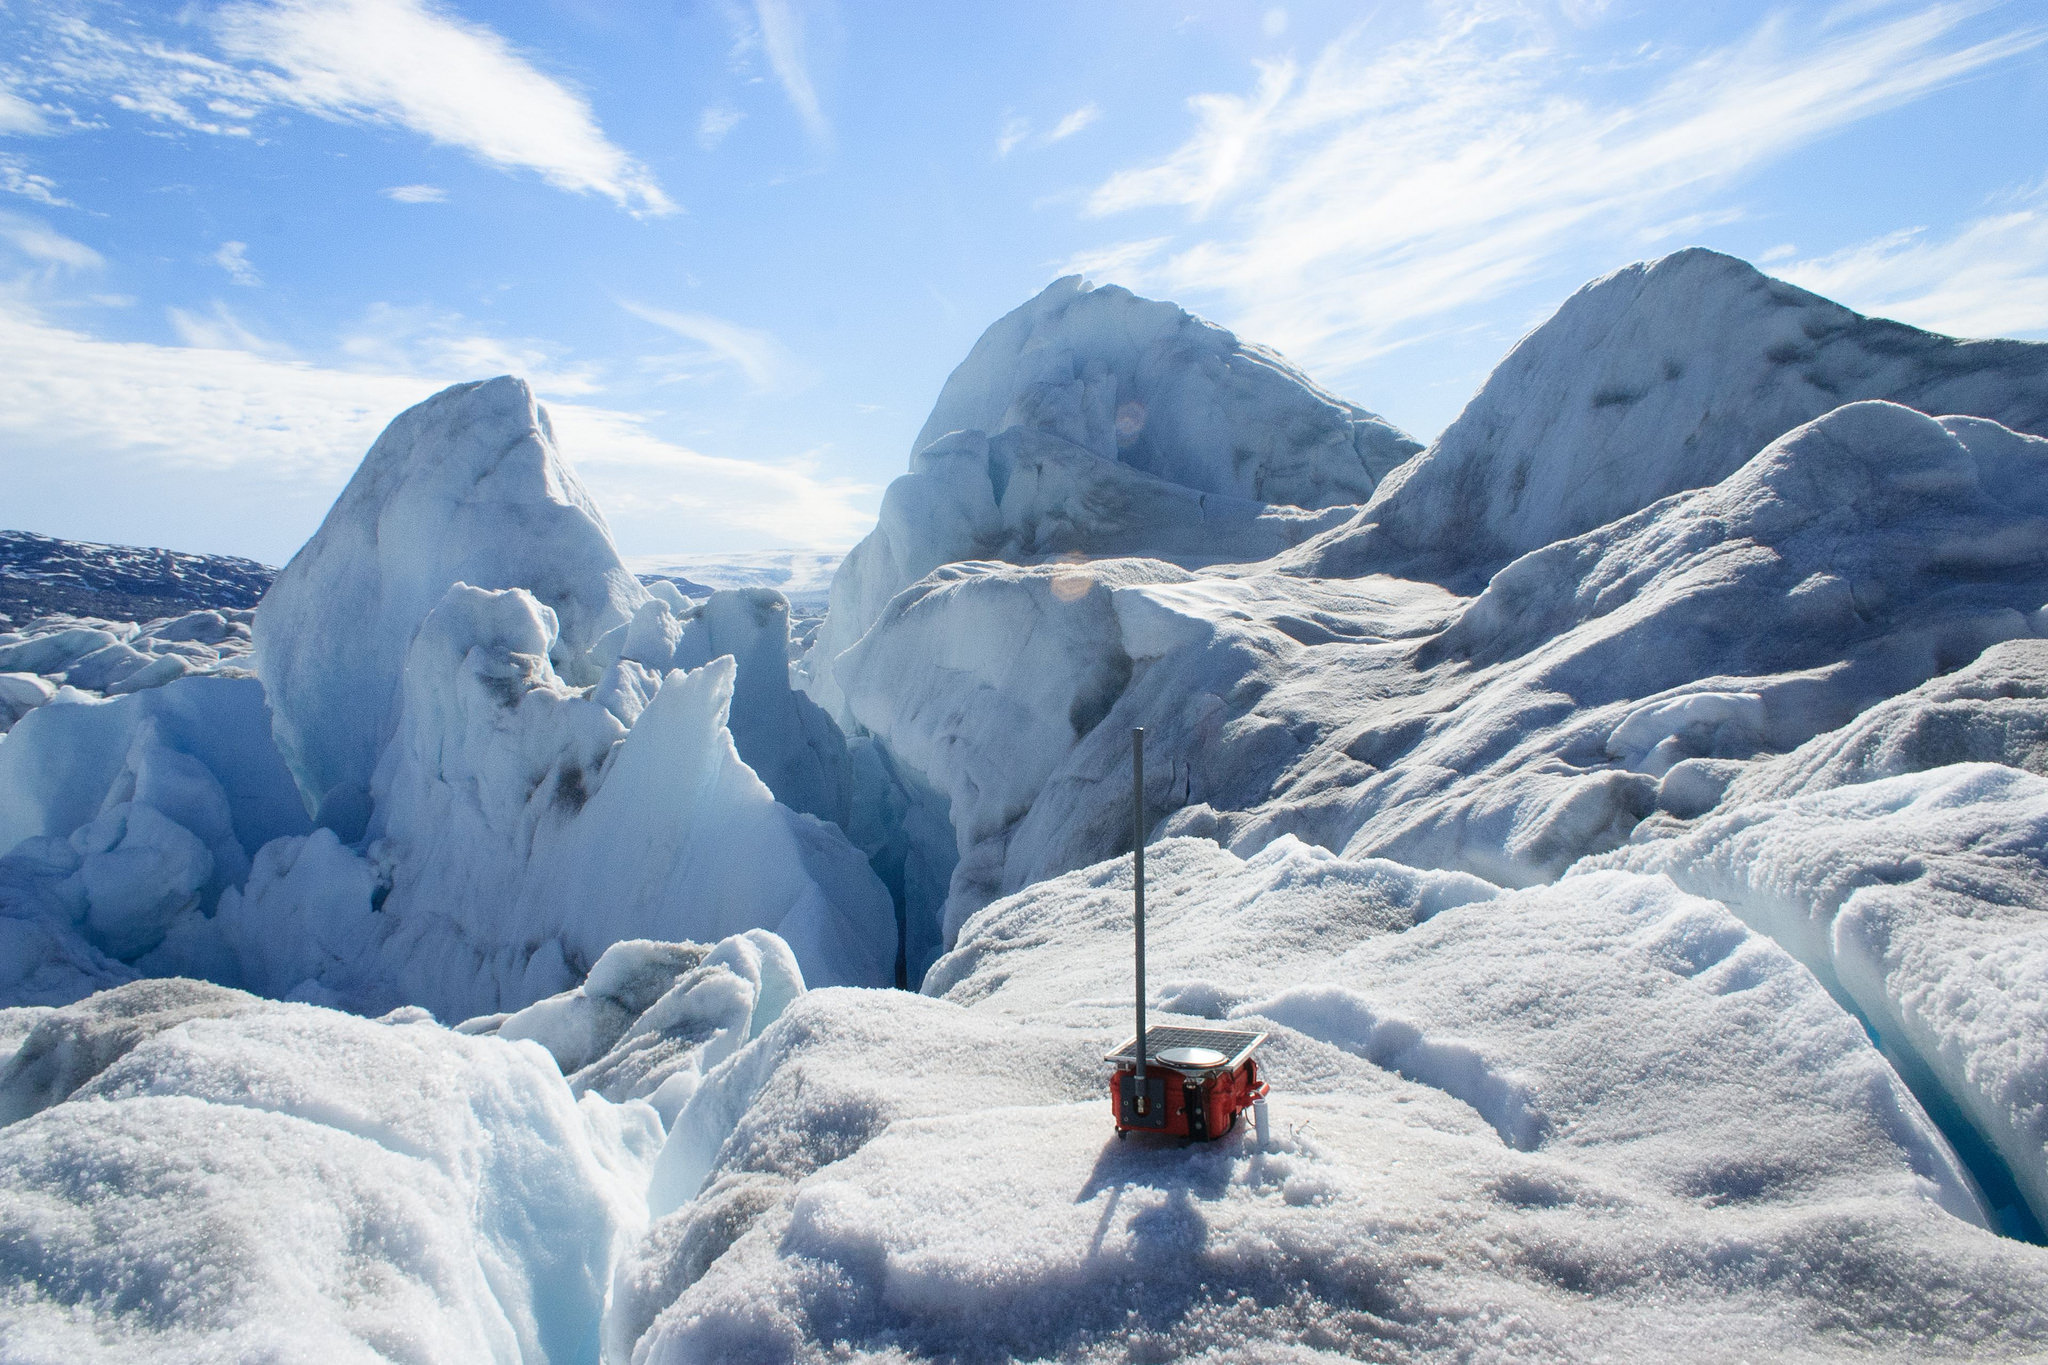 One of the 20 GPS sensors deployed on Helheim Glacier's chaotic surface. Image credit: Alistair Everett, Swansea University